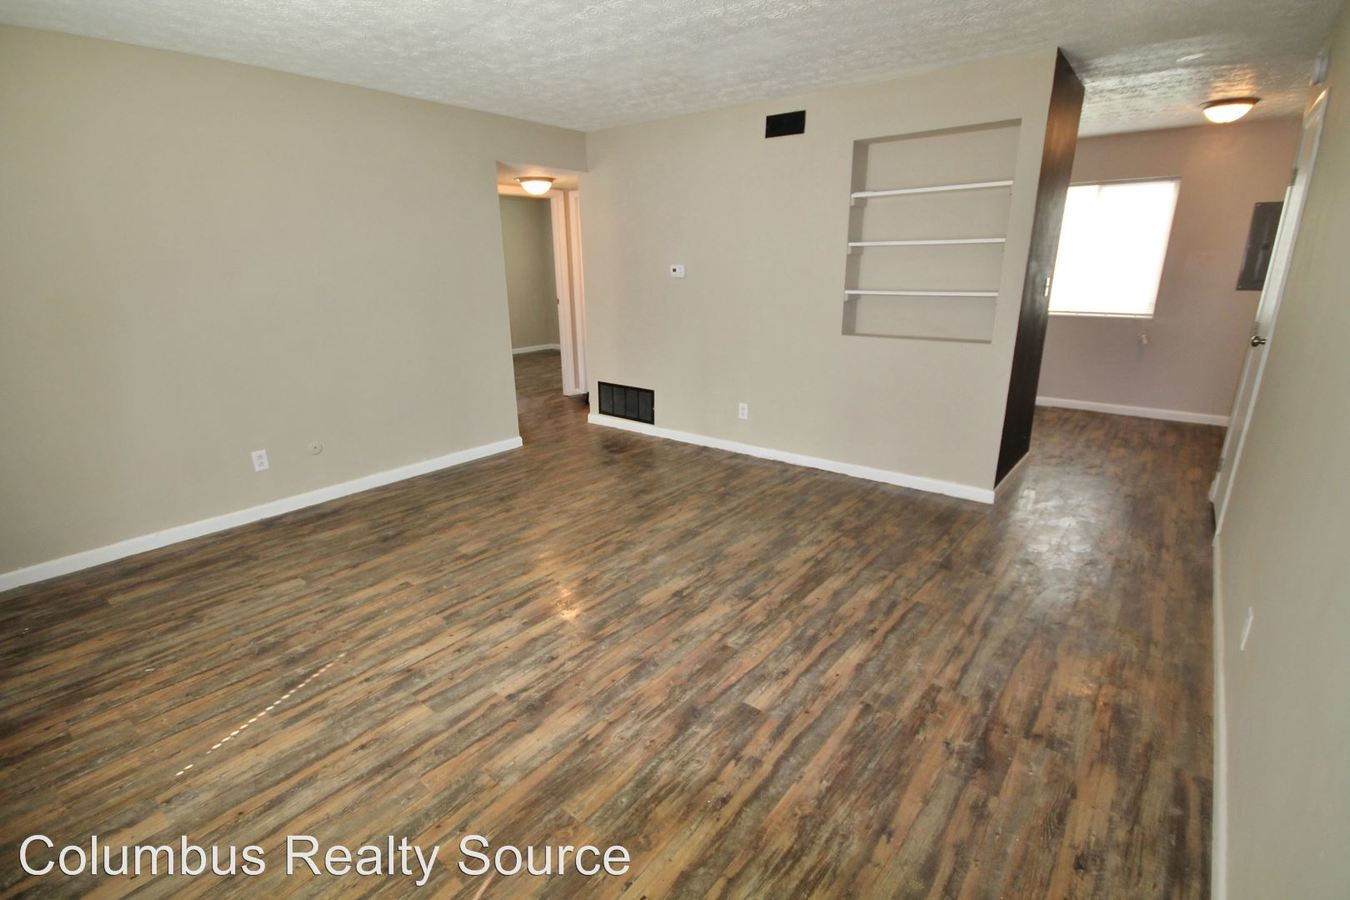 2 Bedrooms 1 Bathroom Apartment for rent at 451 Alden Ave in Columbus, OH